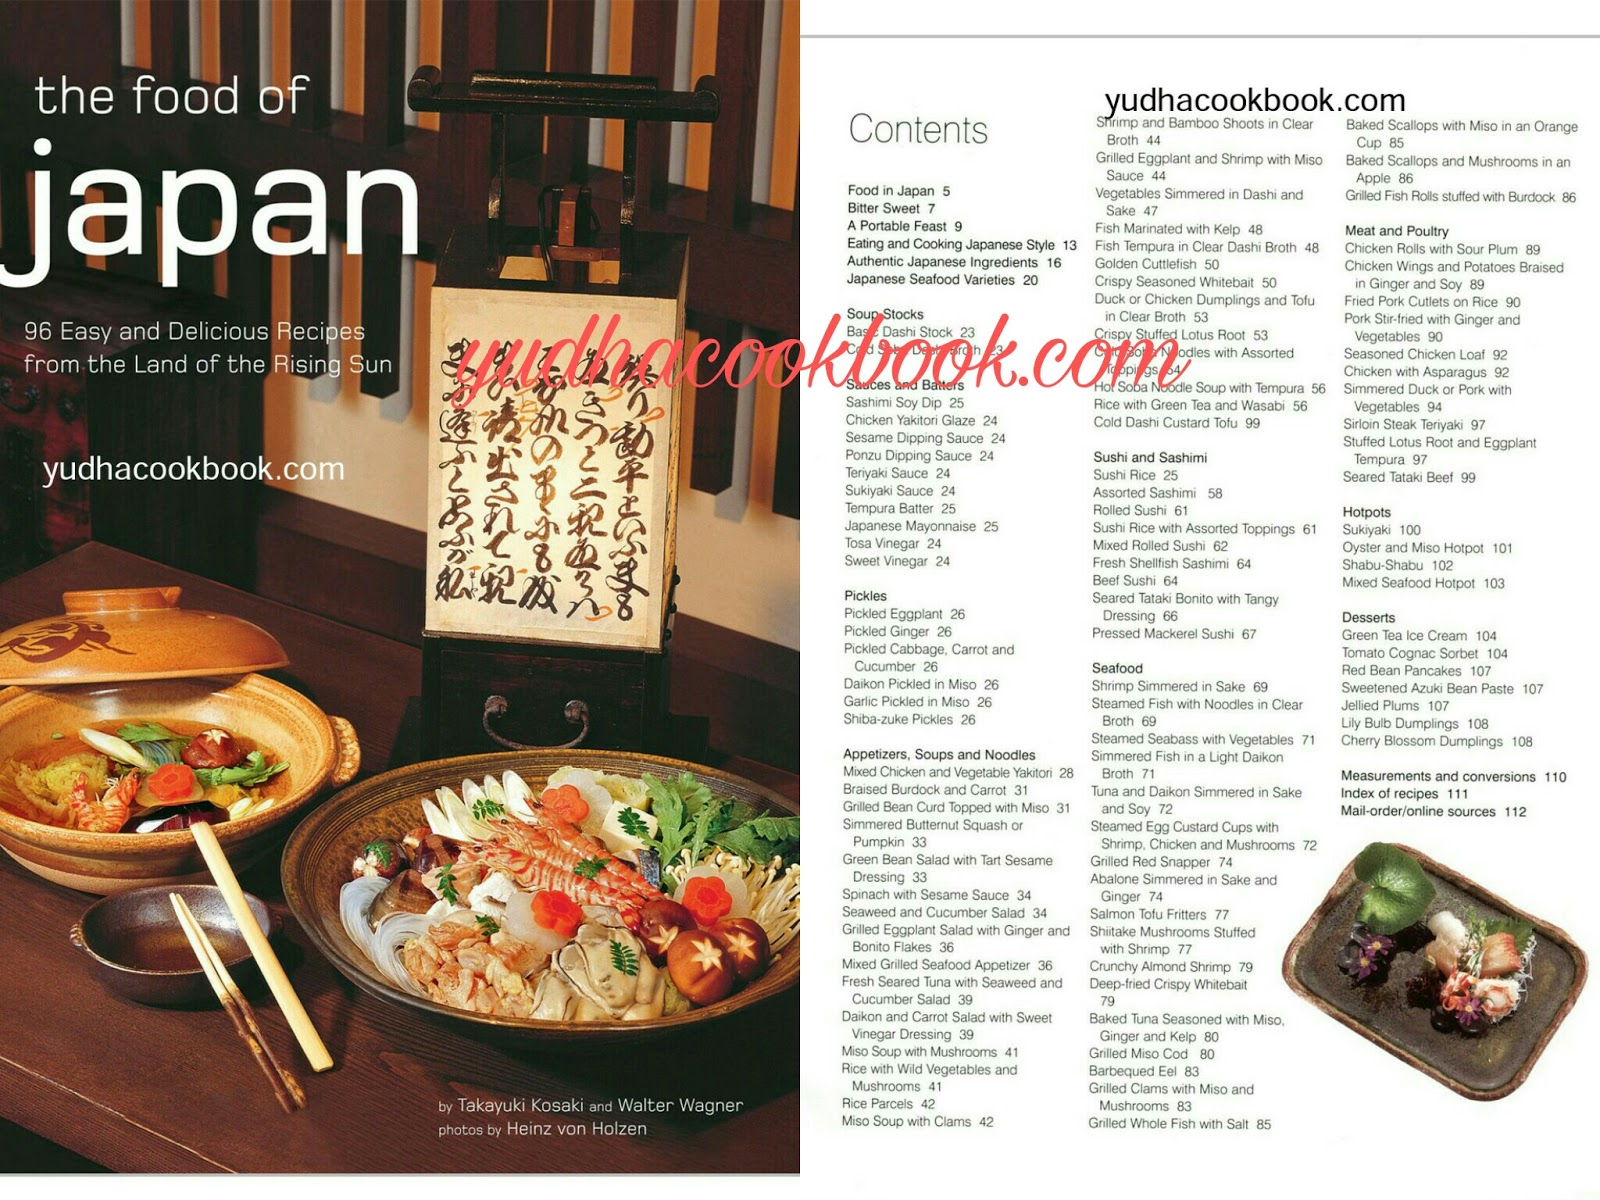 The food of japan 96 easy and delicious recipes from the land of the food of japan 96 easy and delicious recipes from the land of the rising forumfinder Image collections